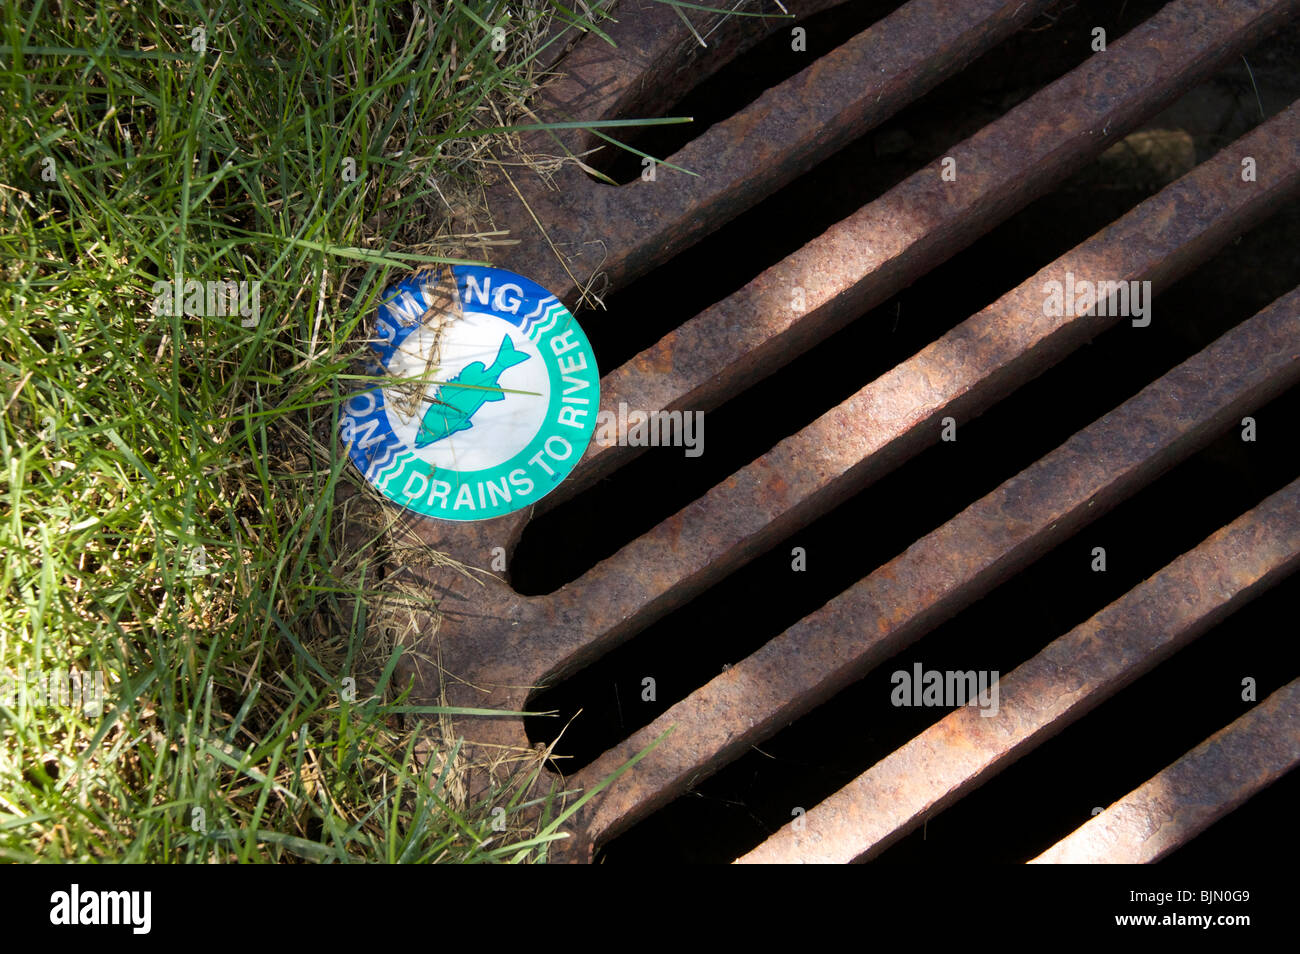 No dumping warning on storm drain to river. - Stock Image